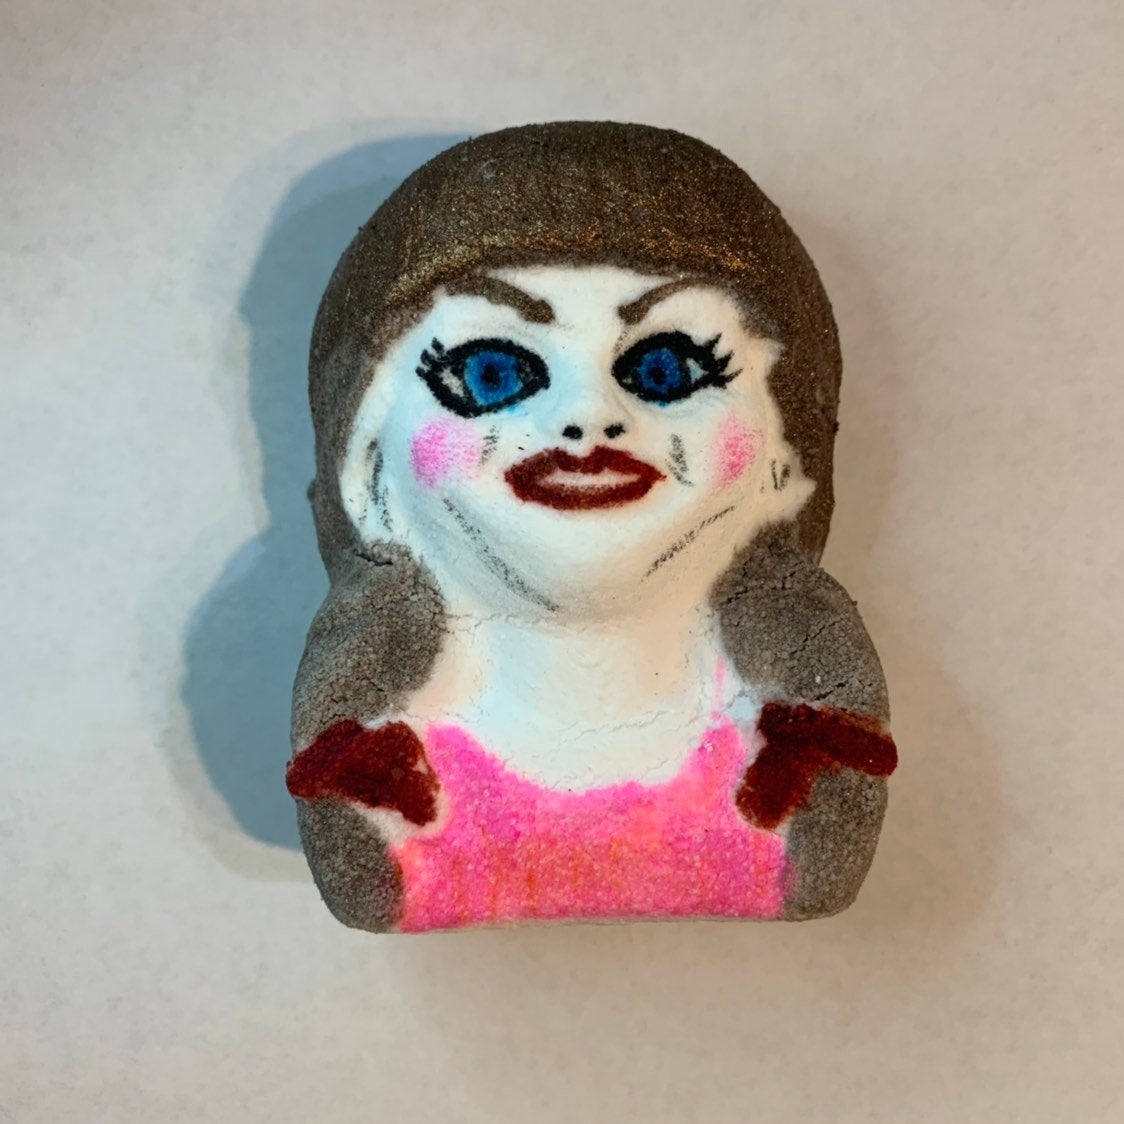 Scary Horror Porcelain Doll Bath Bomb - Melting Doll bloody bath bomb